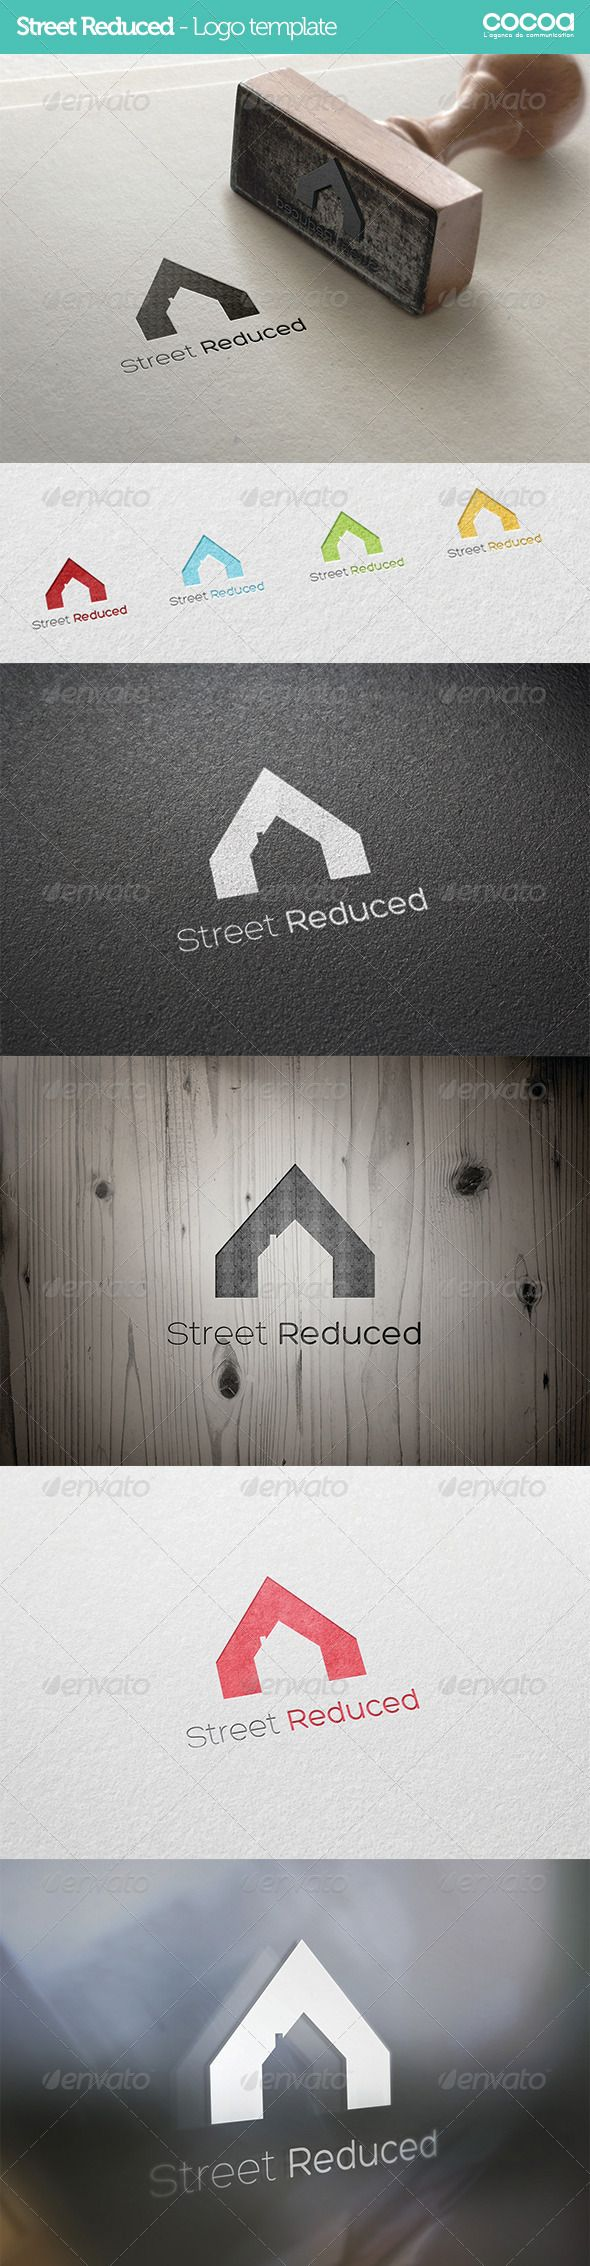 Street Reduced - Logo Template   #GraphicRiver         An excellent logo template suitable for real estate, agency and more …   Font used : Hero   Possibility to change color easy   Mock-up not included.     Created: 9November13 GraphicsFilesIncluded: VectorEPS #AIIllustrator Layered: Yes MinimumAdobeCSVersion: CS3 Resolution: Resizable Tags: a #clean #commerce #commercial #estate #home #house #logotemplate #marketing #original #realestate